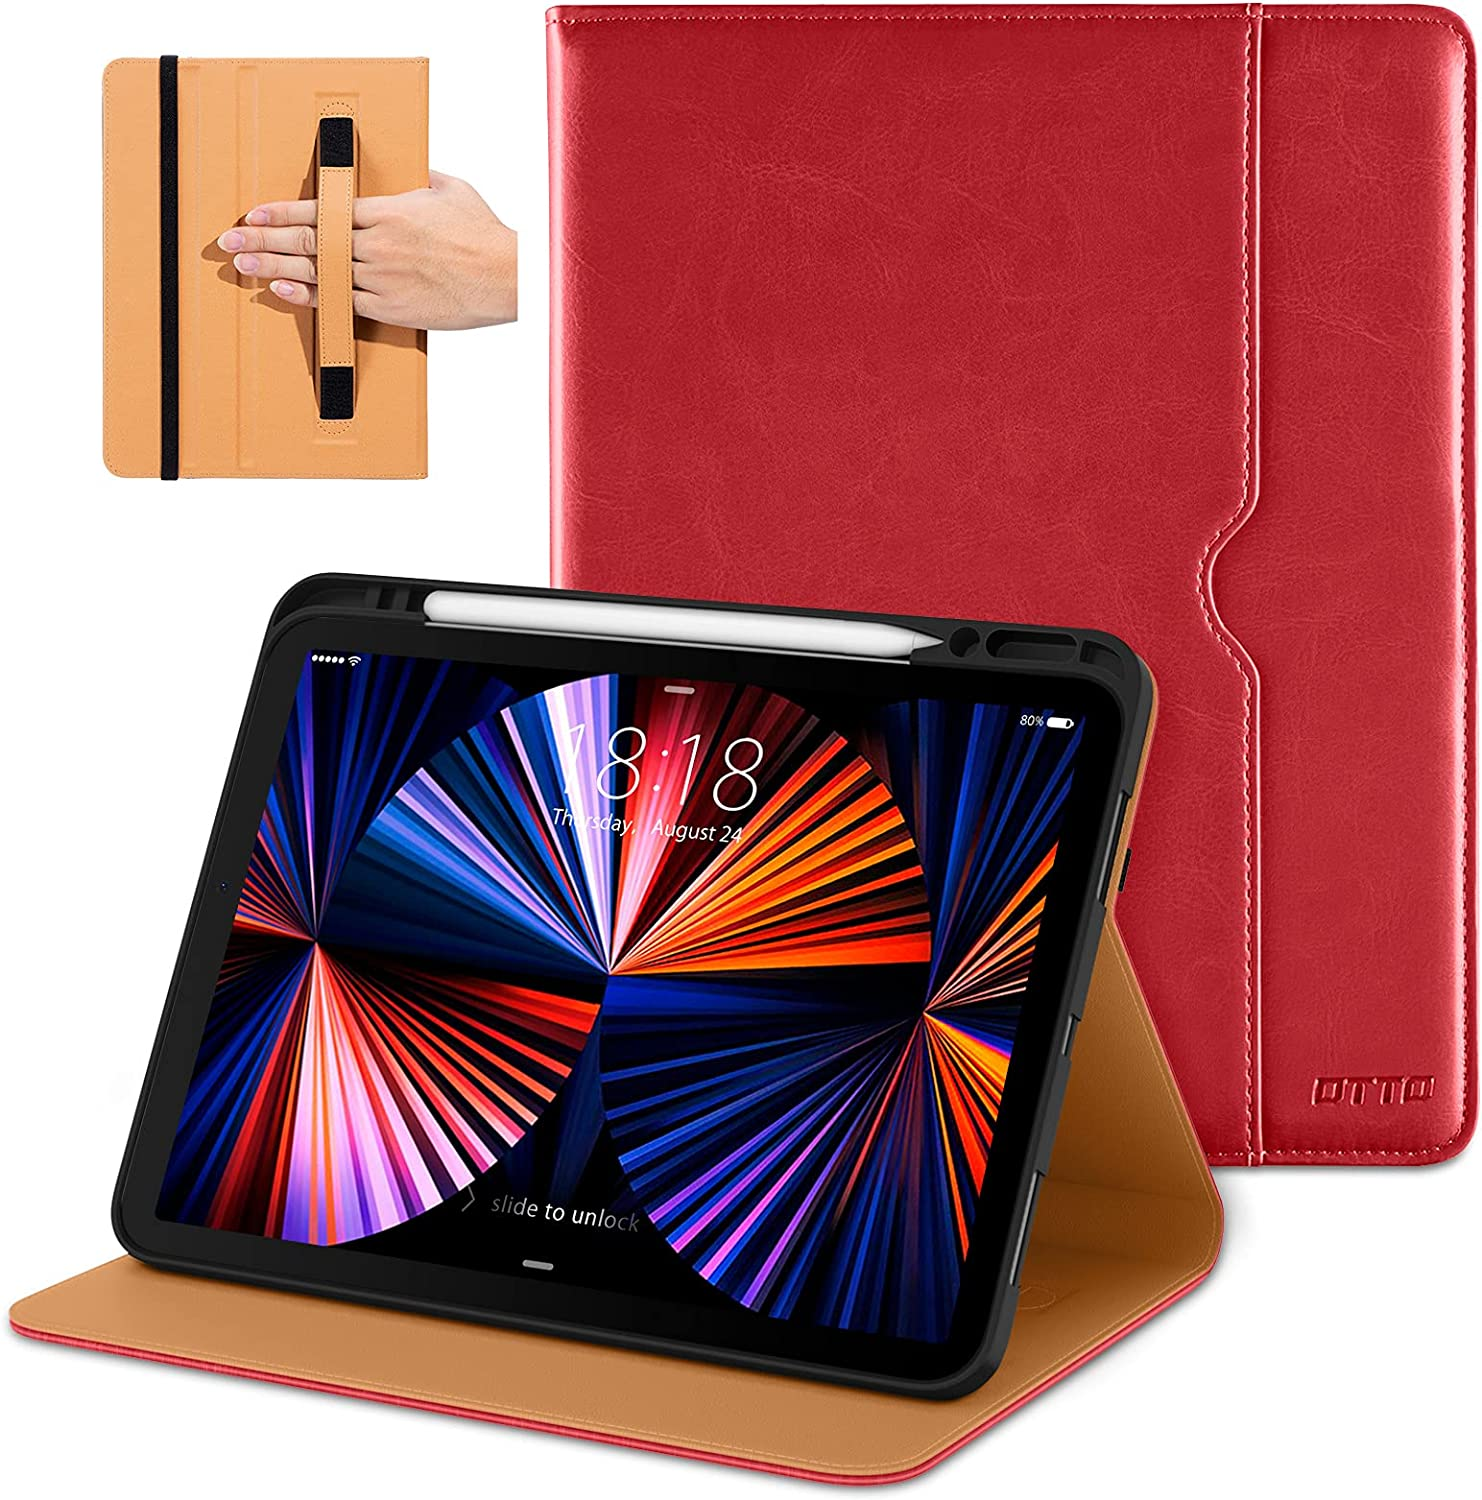 DTTO Compatible with iPad Pro 12.9 Case 2021, Multiple Viewing Angles Cover [Supports Pencil 2nd Gen Charging] with Pencil Holder - Auto Wake/Sleep for iPad Pro 12.9 Inch 5th Generation, Red